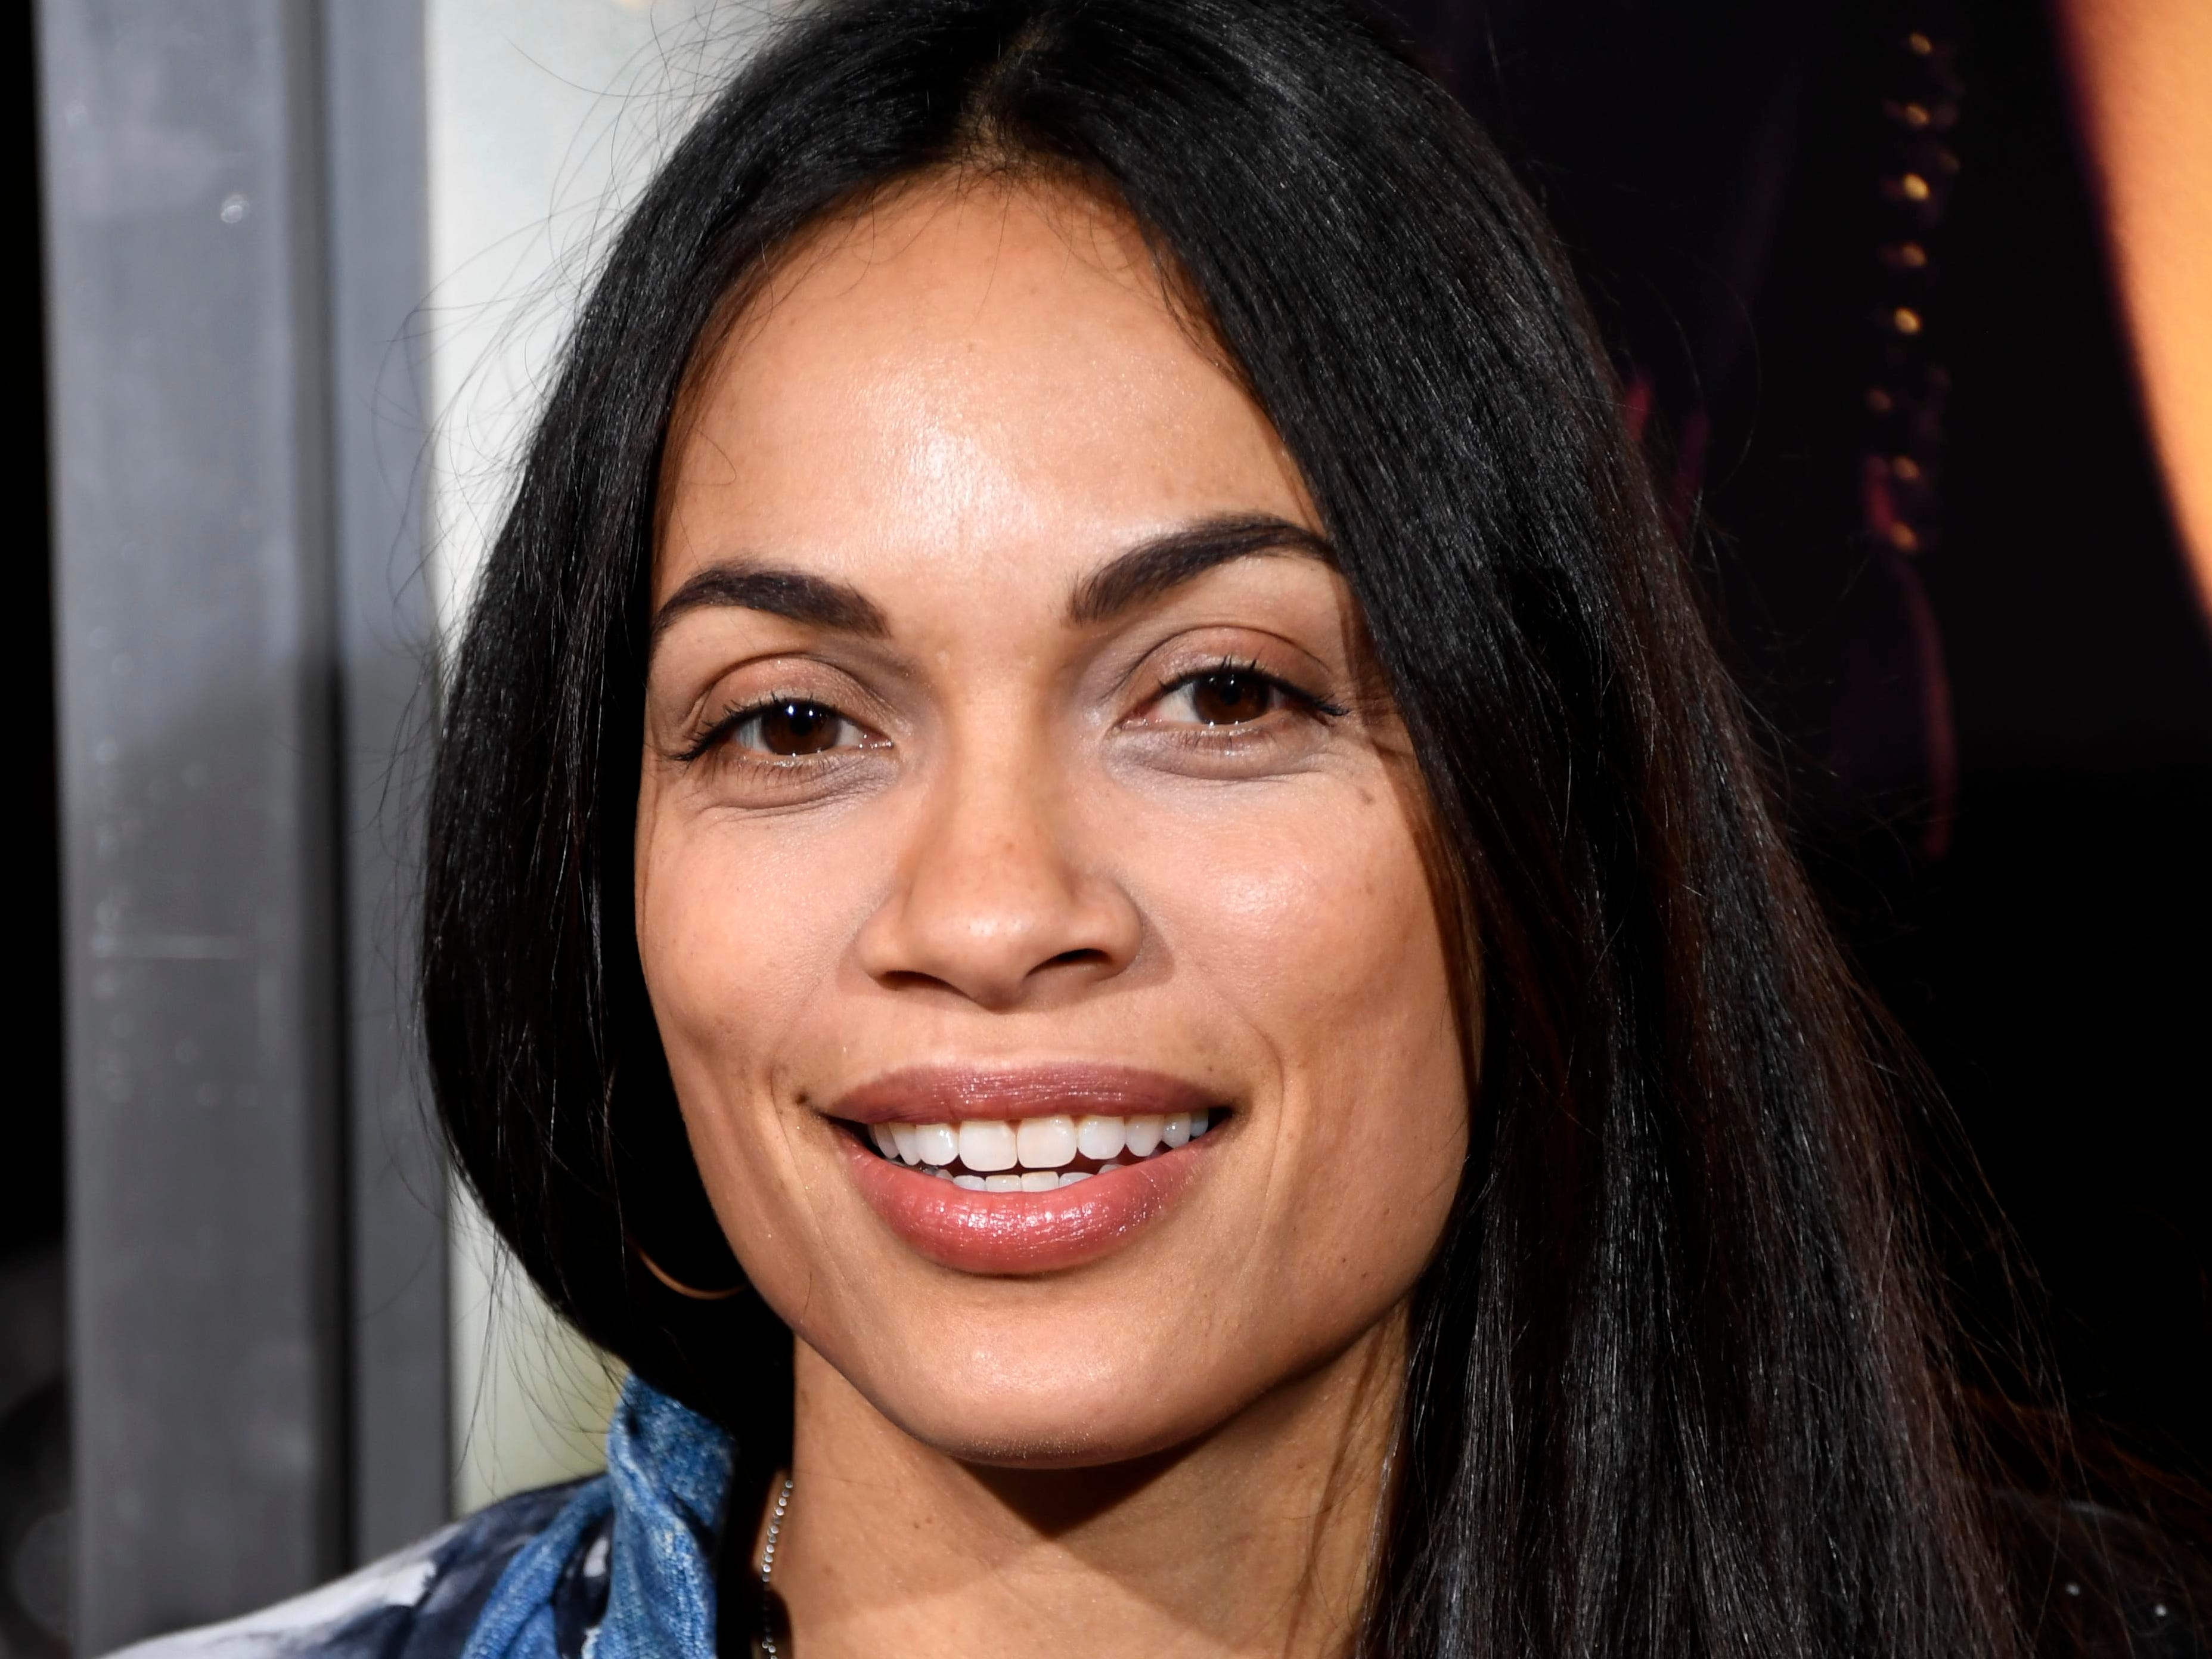 "LOS ANGELES, CALIFORNIA - JANUARY 30: Rosario Dawson attends the Premiere Of Columbia Pictures' ""Miss Bala"" at Regal LA Live Stadium 14 on January 30, 2019 in Los Angeles, California. (Photo by Frazer Harrison/Getty Images) ORG XMIT: 775286444 ORIG FILE ID: 1126345796"